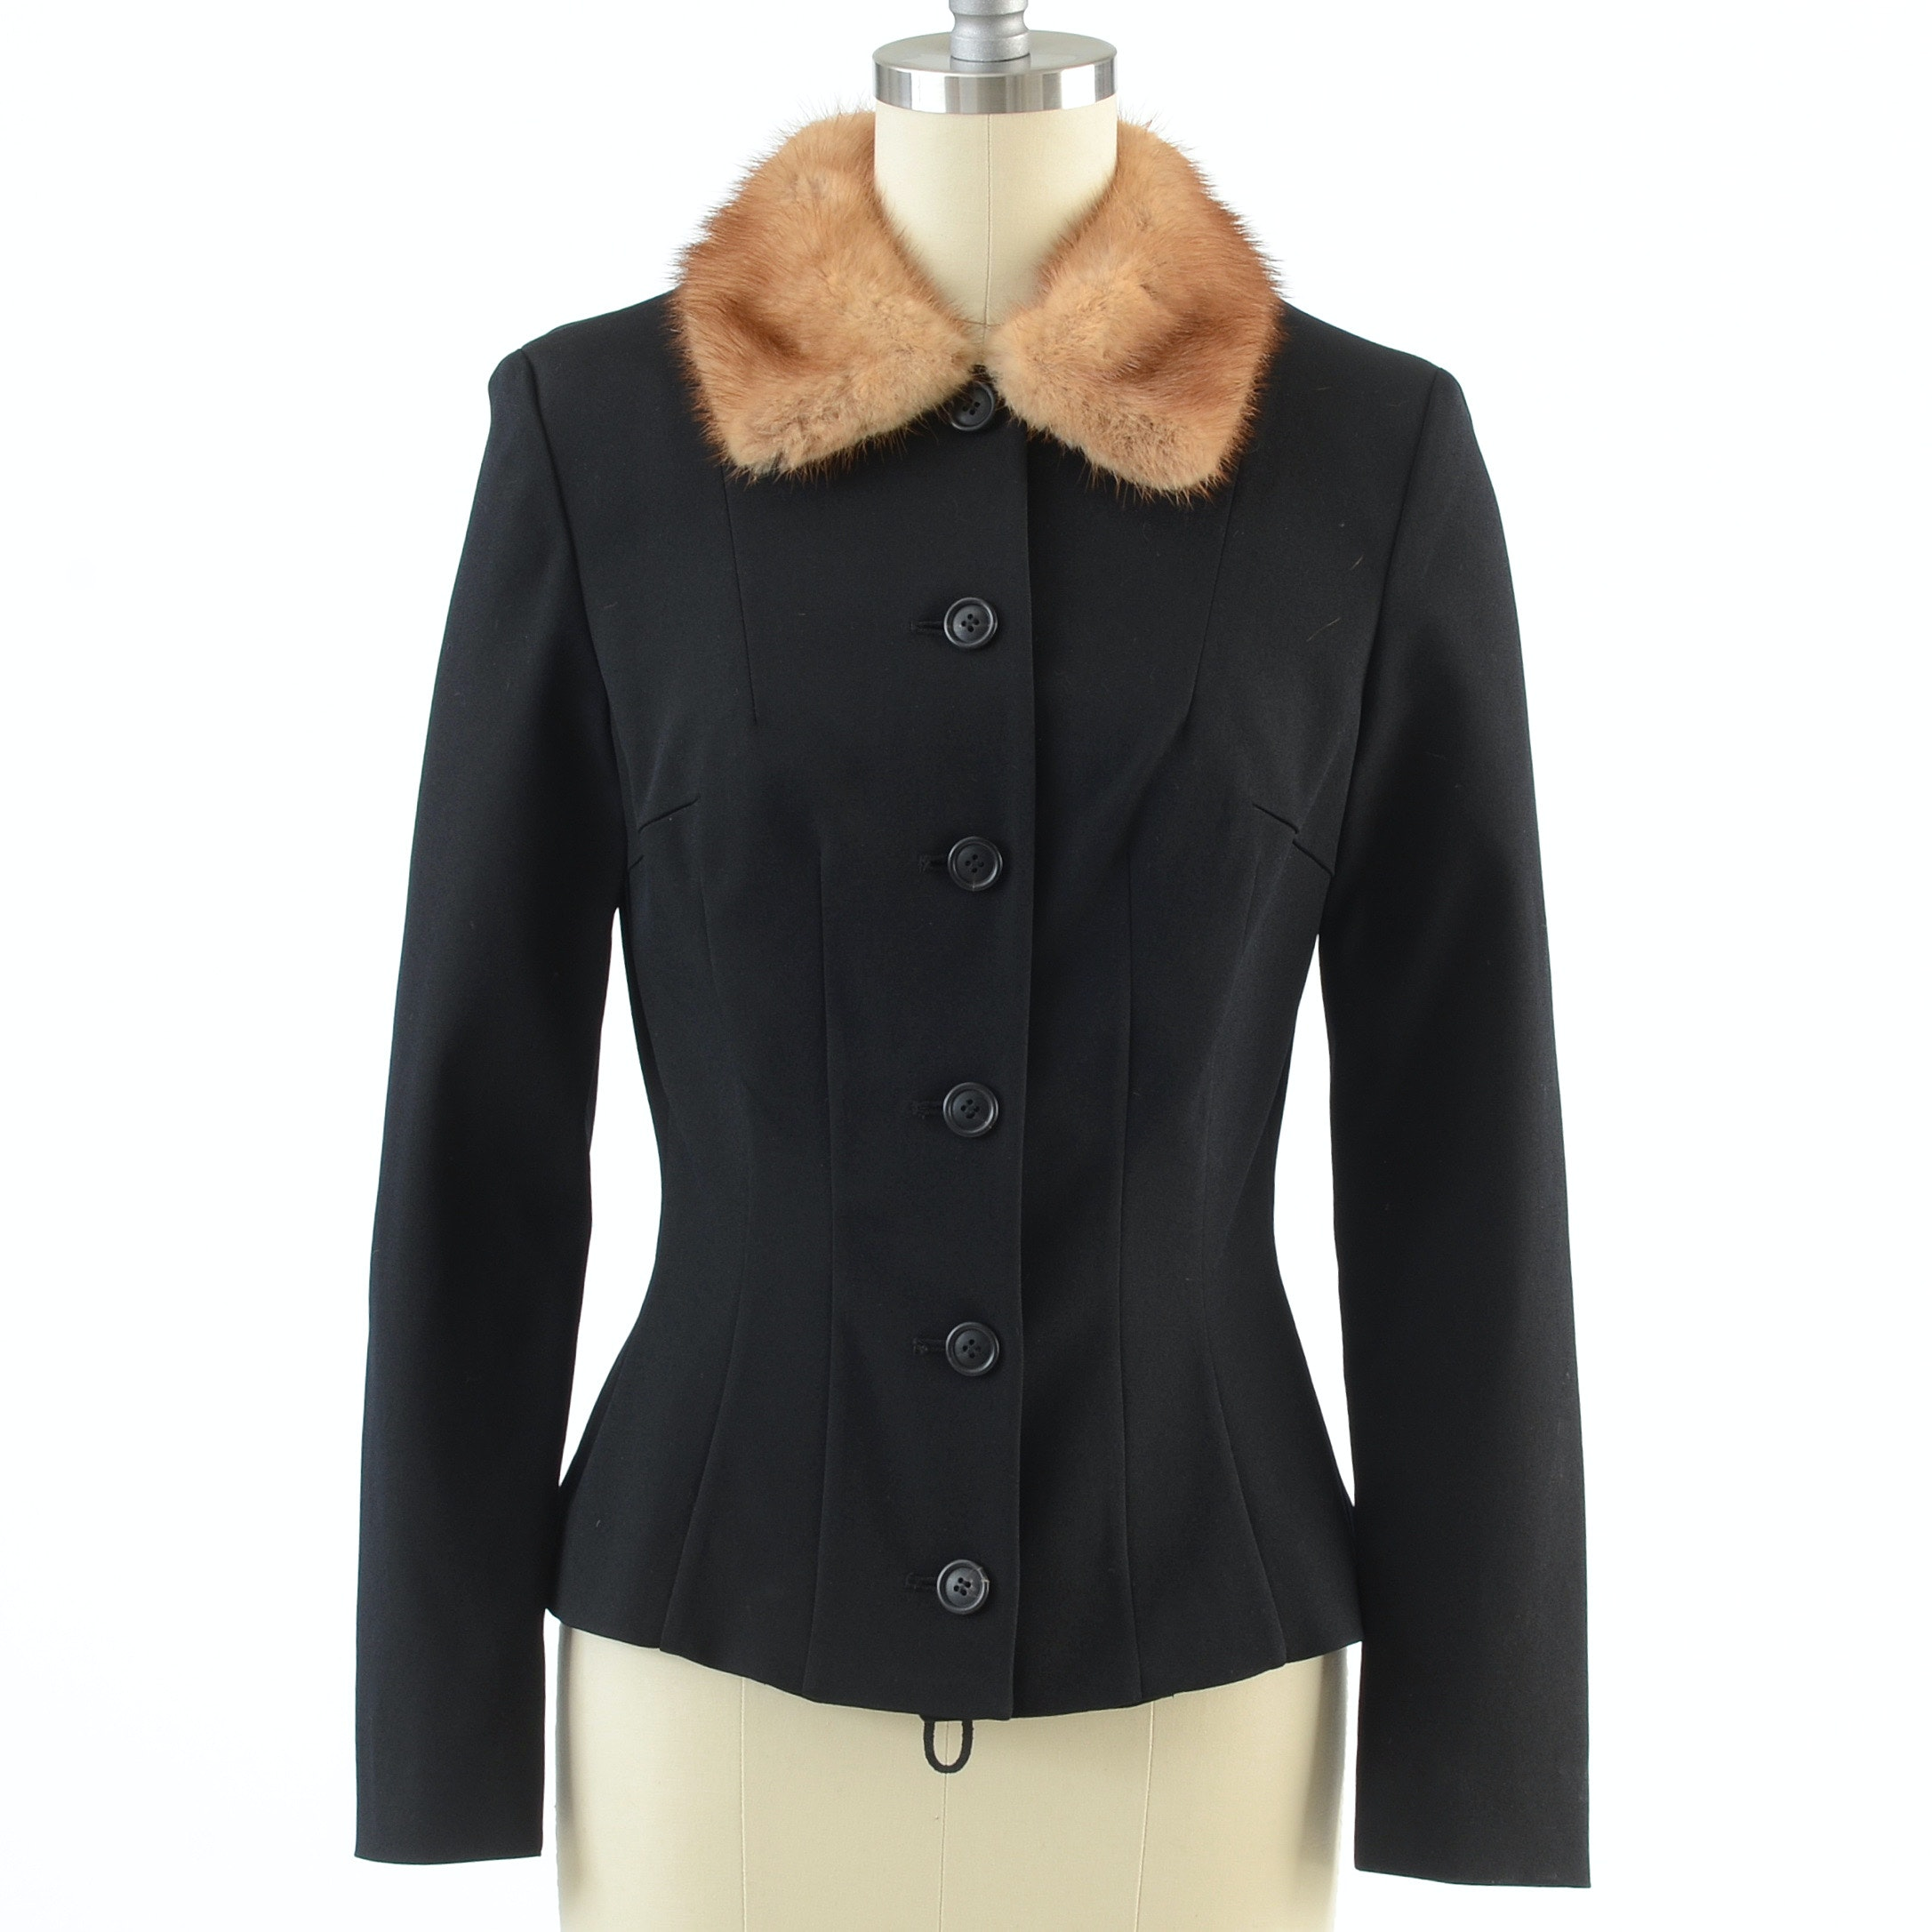 Dolce & Gabbana Black Button Front Jacket with Natural Mink Collar